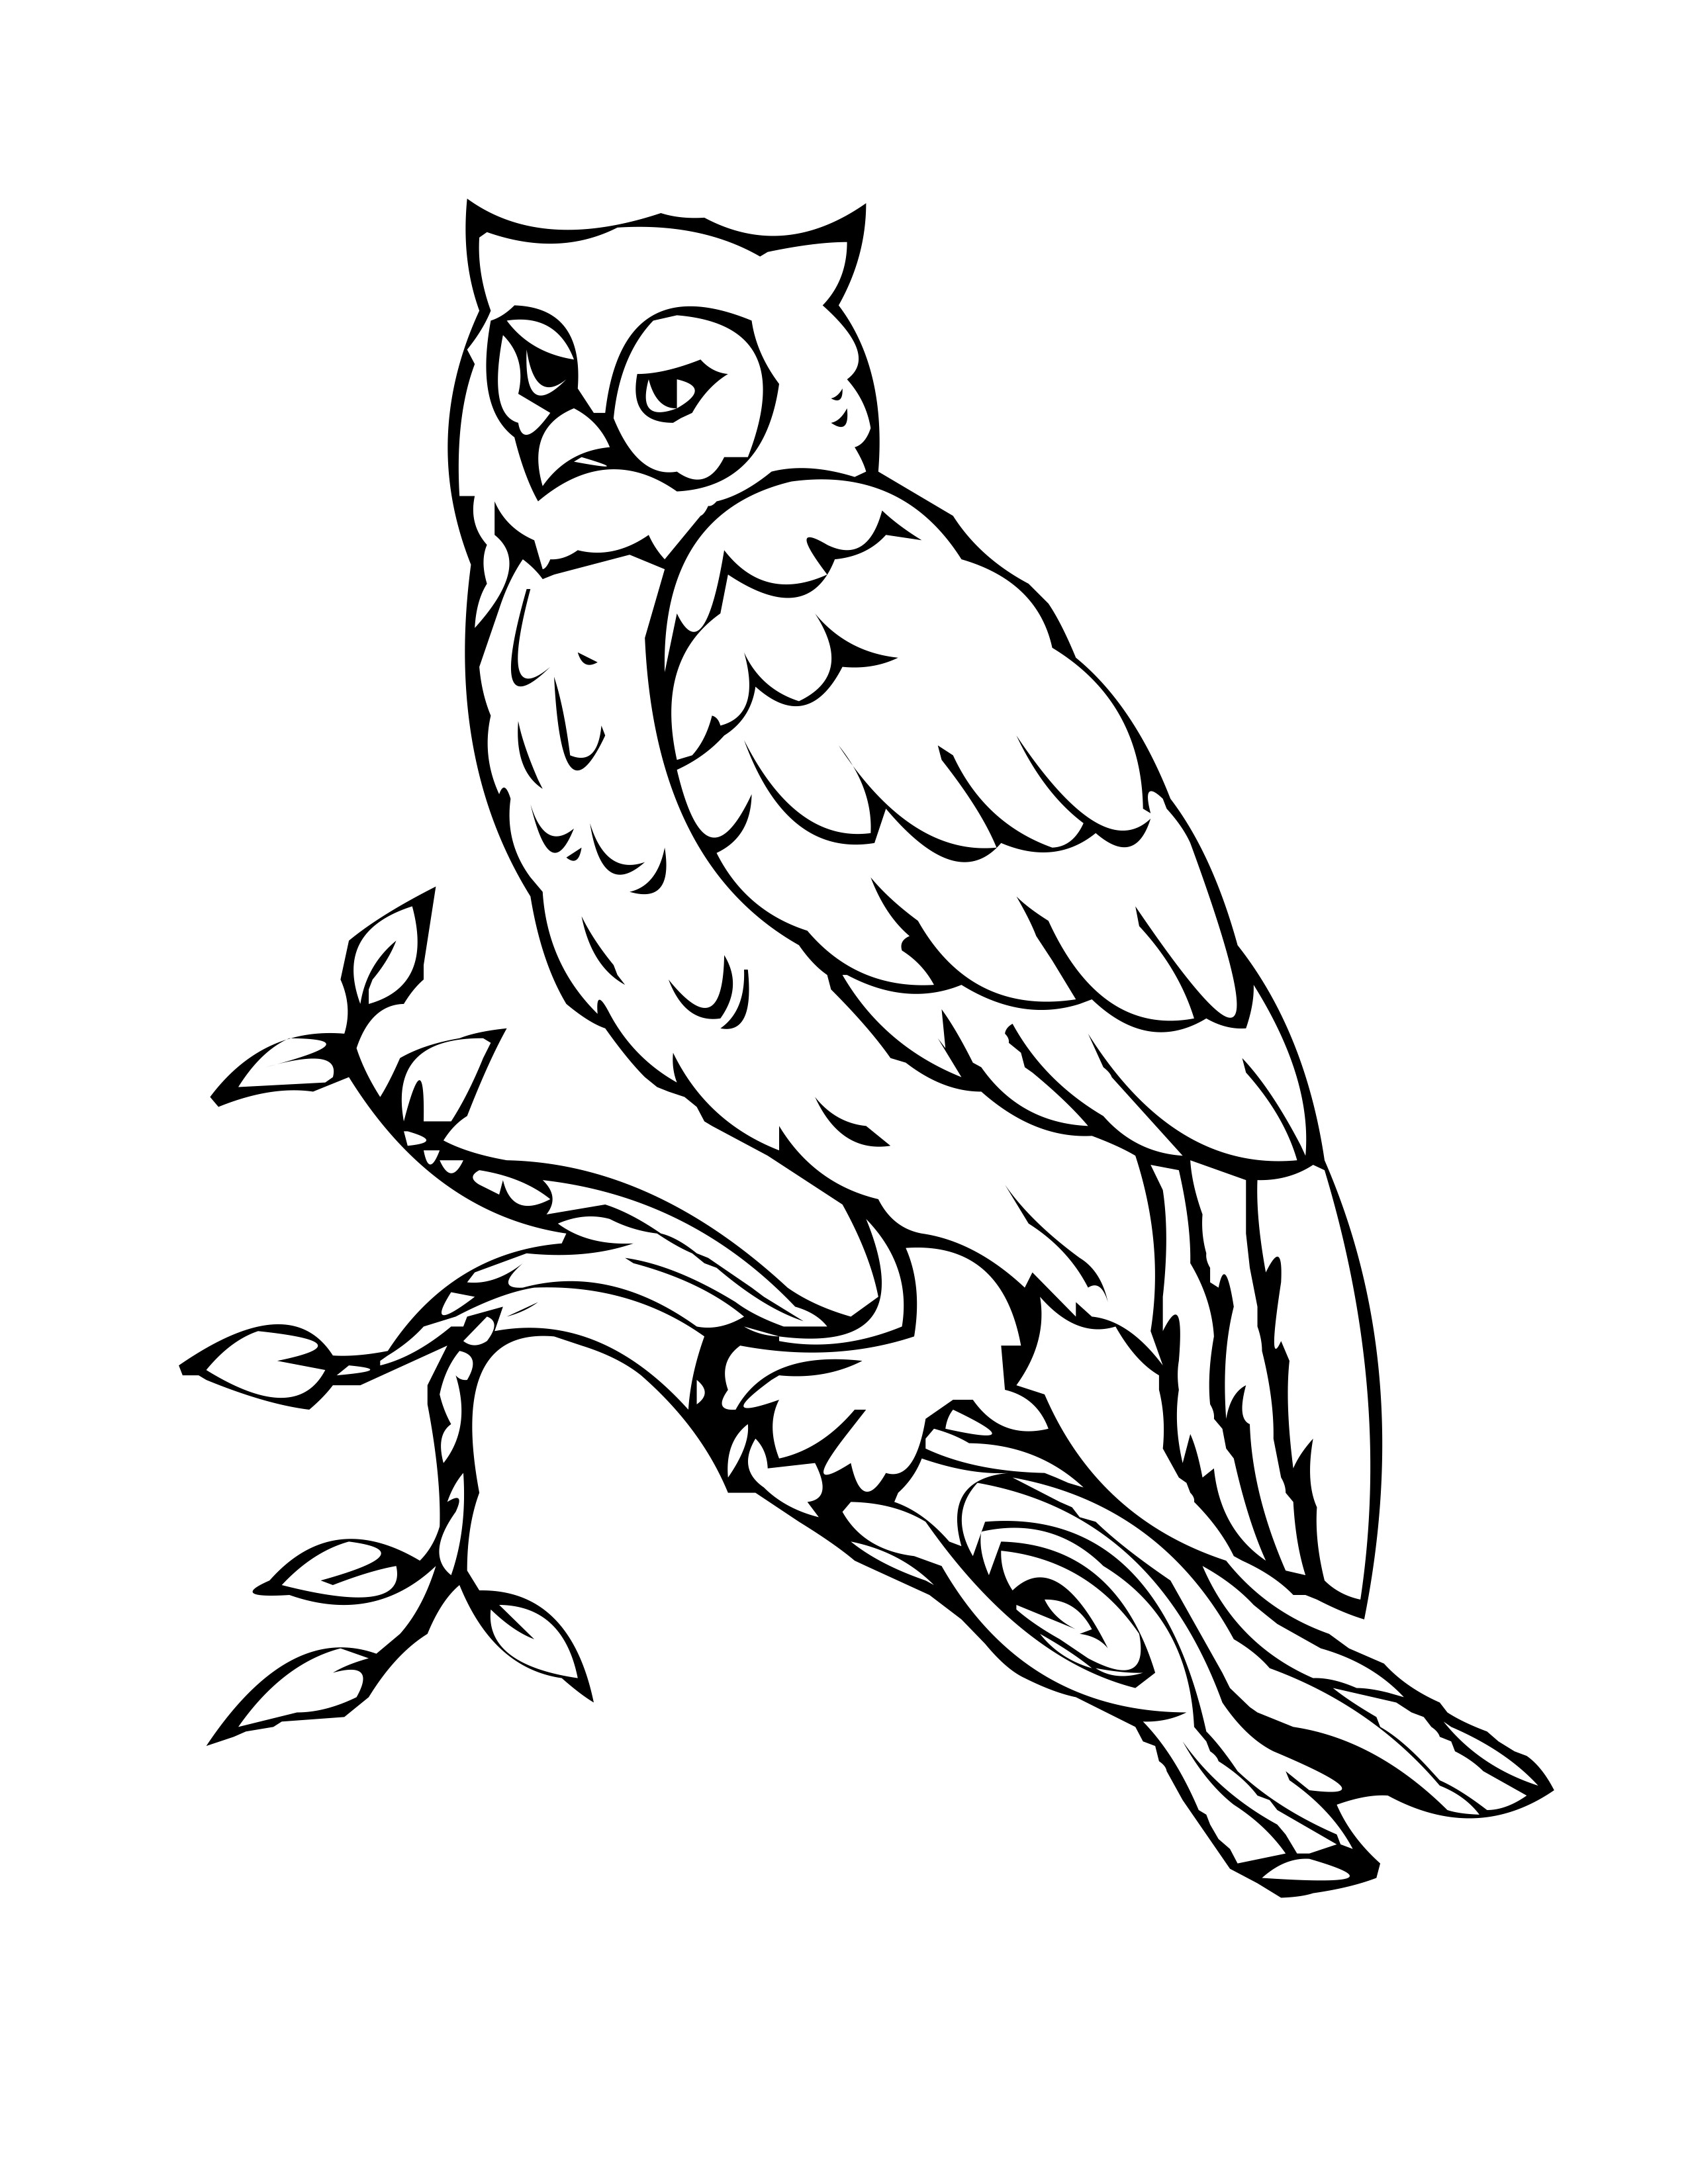 kid outline coloring page bird coloring pages page outline coloring kid